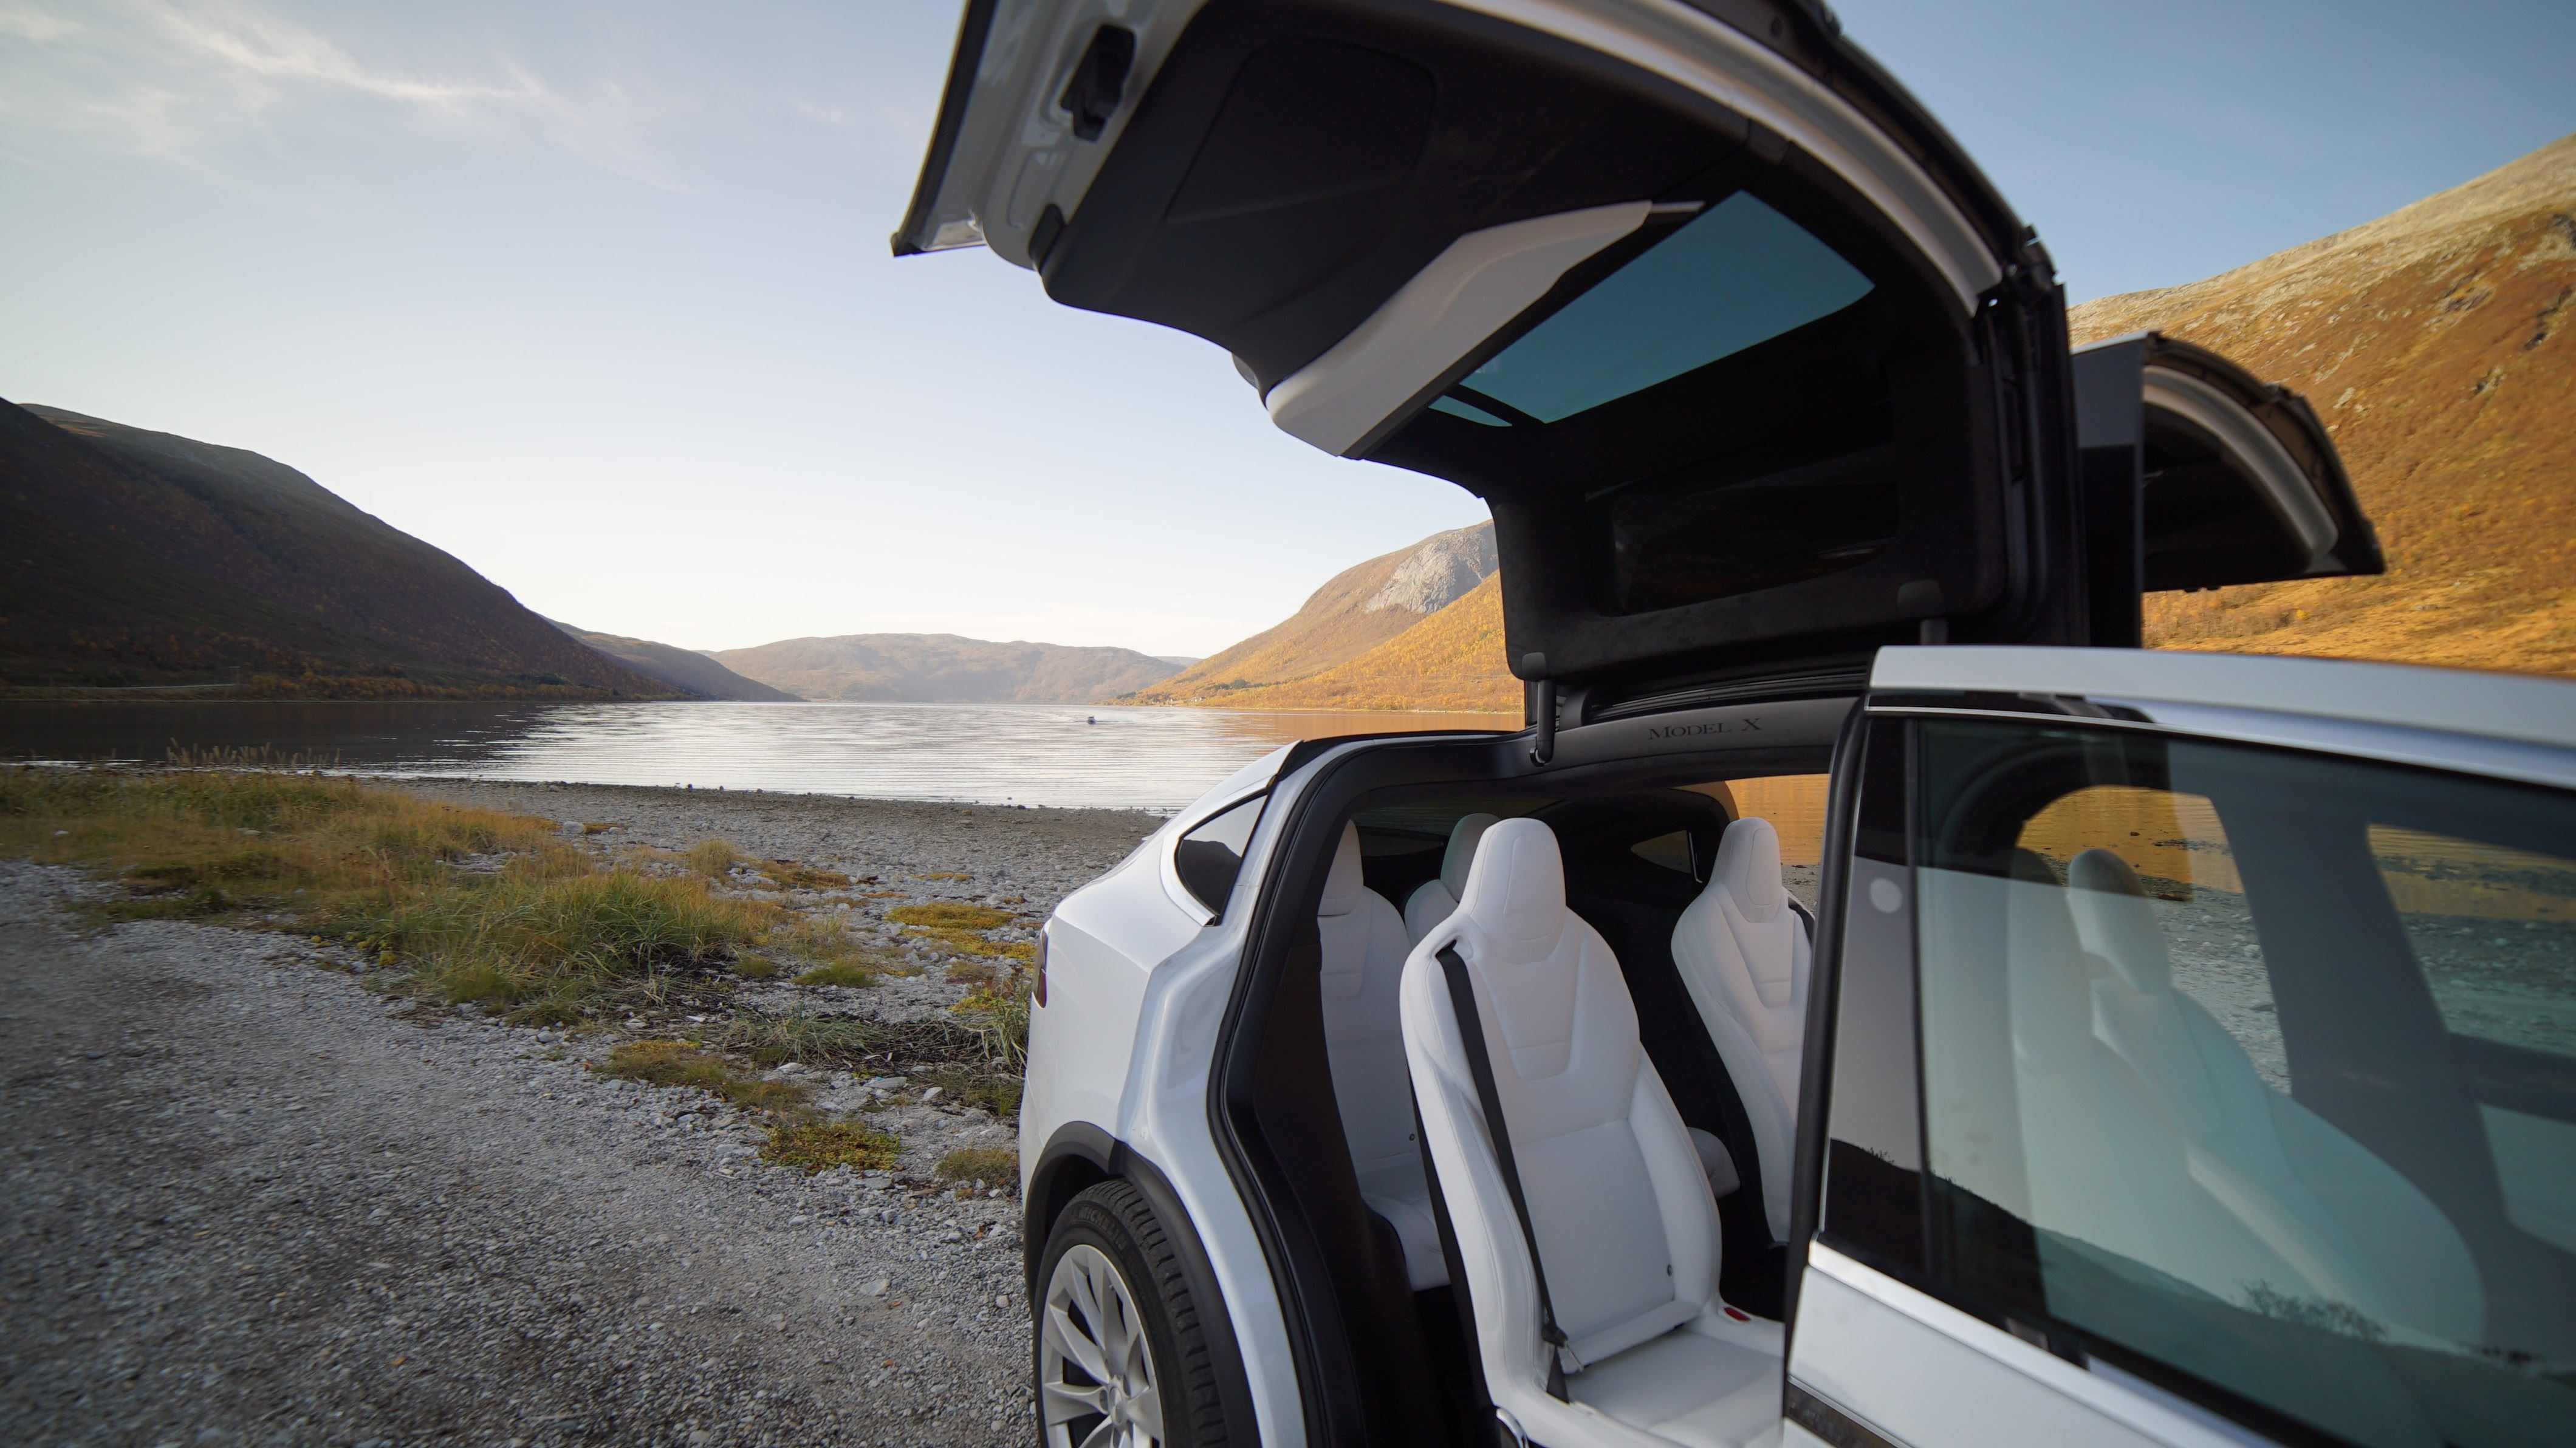 Fjord Sightseeing from Tromsø with our eco-friendly Tesla Model X - Arctic Cruise in Norway